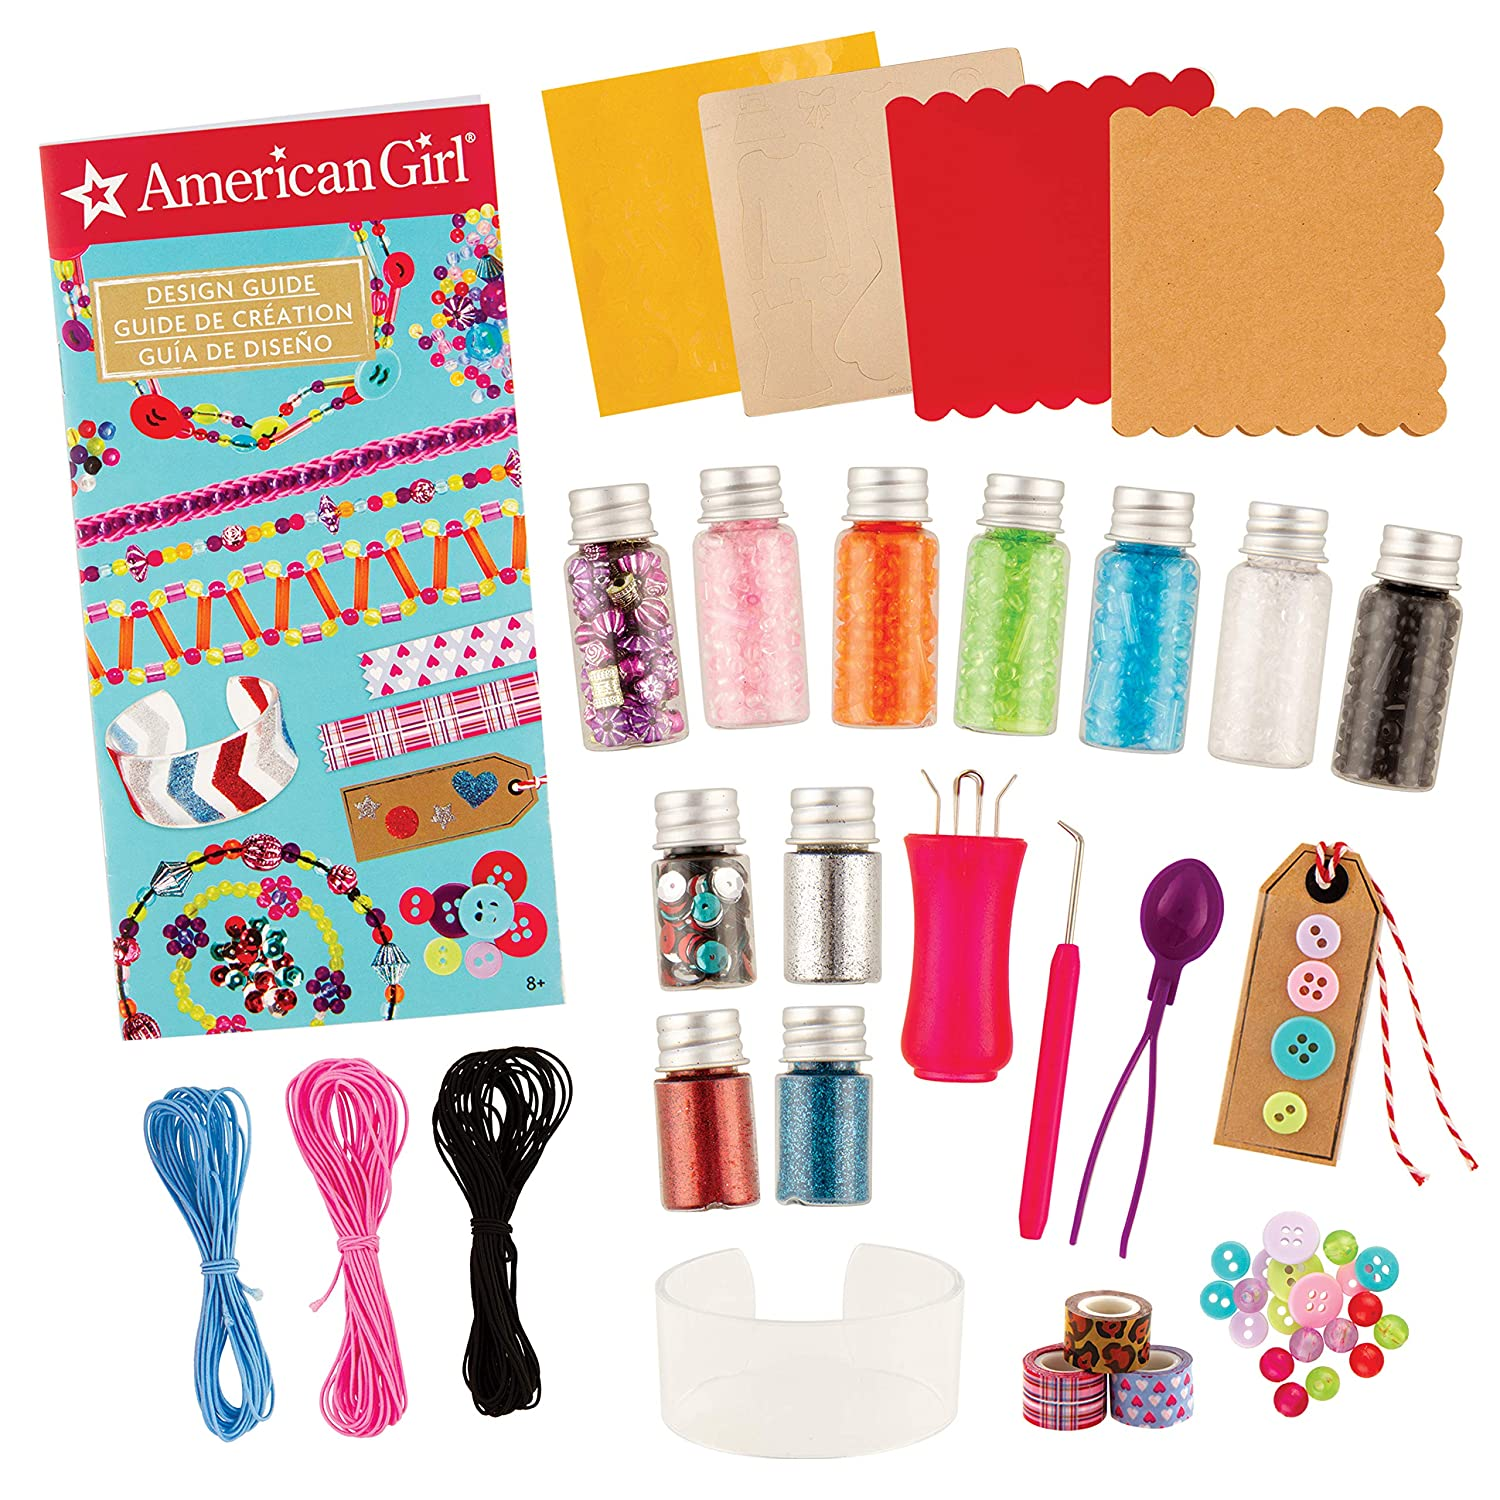 American Girl Ultimate Jewelry Crafting Kit